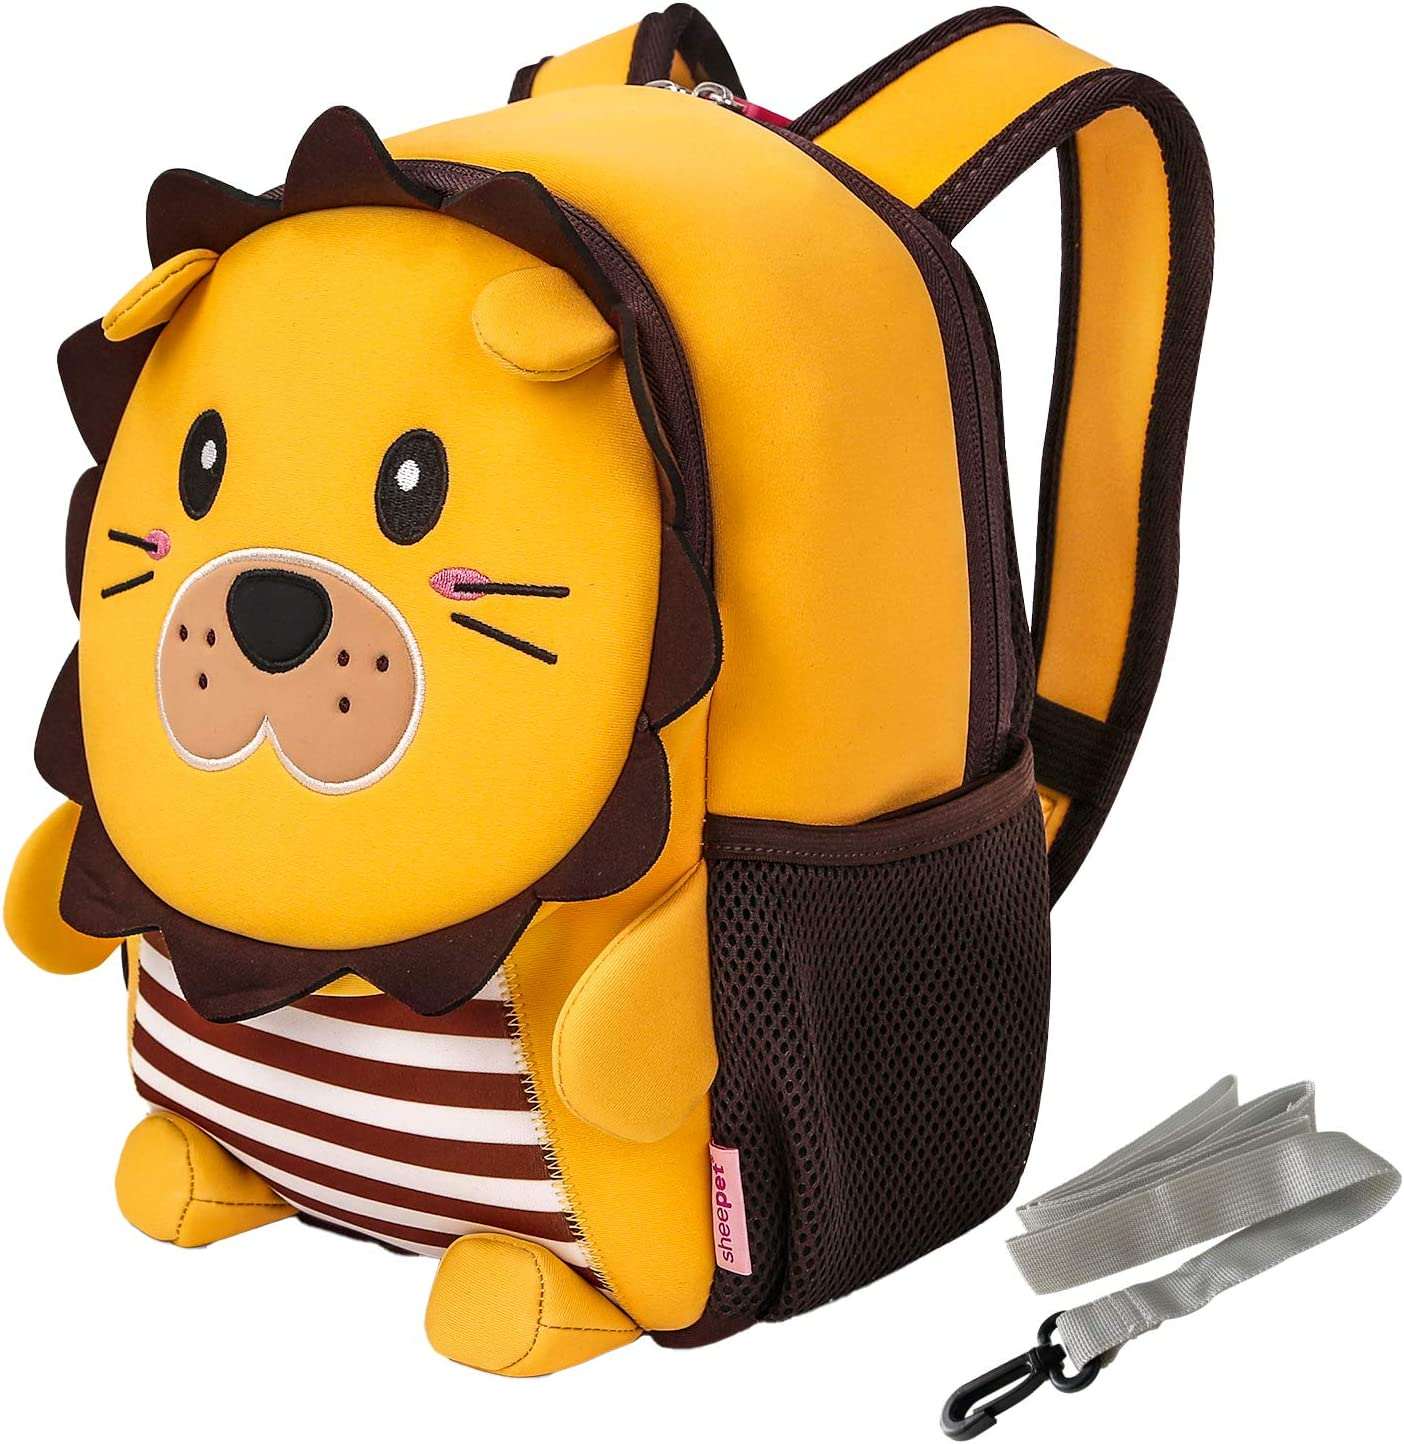 Cute Lion Toddler Backpack with Leash, Kawaii Mini Baby Bookbag Daypack with Harness for Kindergarten,Preschool Bag for 3-6 Years Old Boys Girls Kids